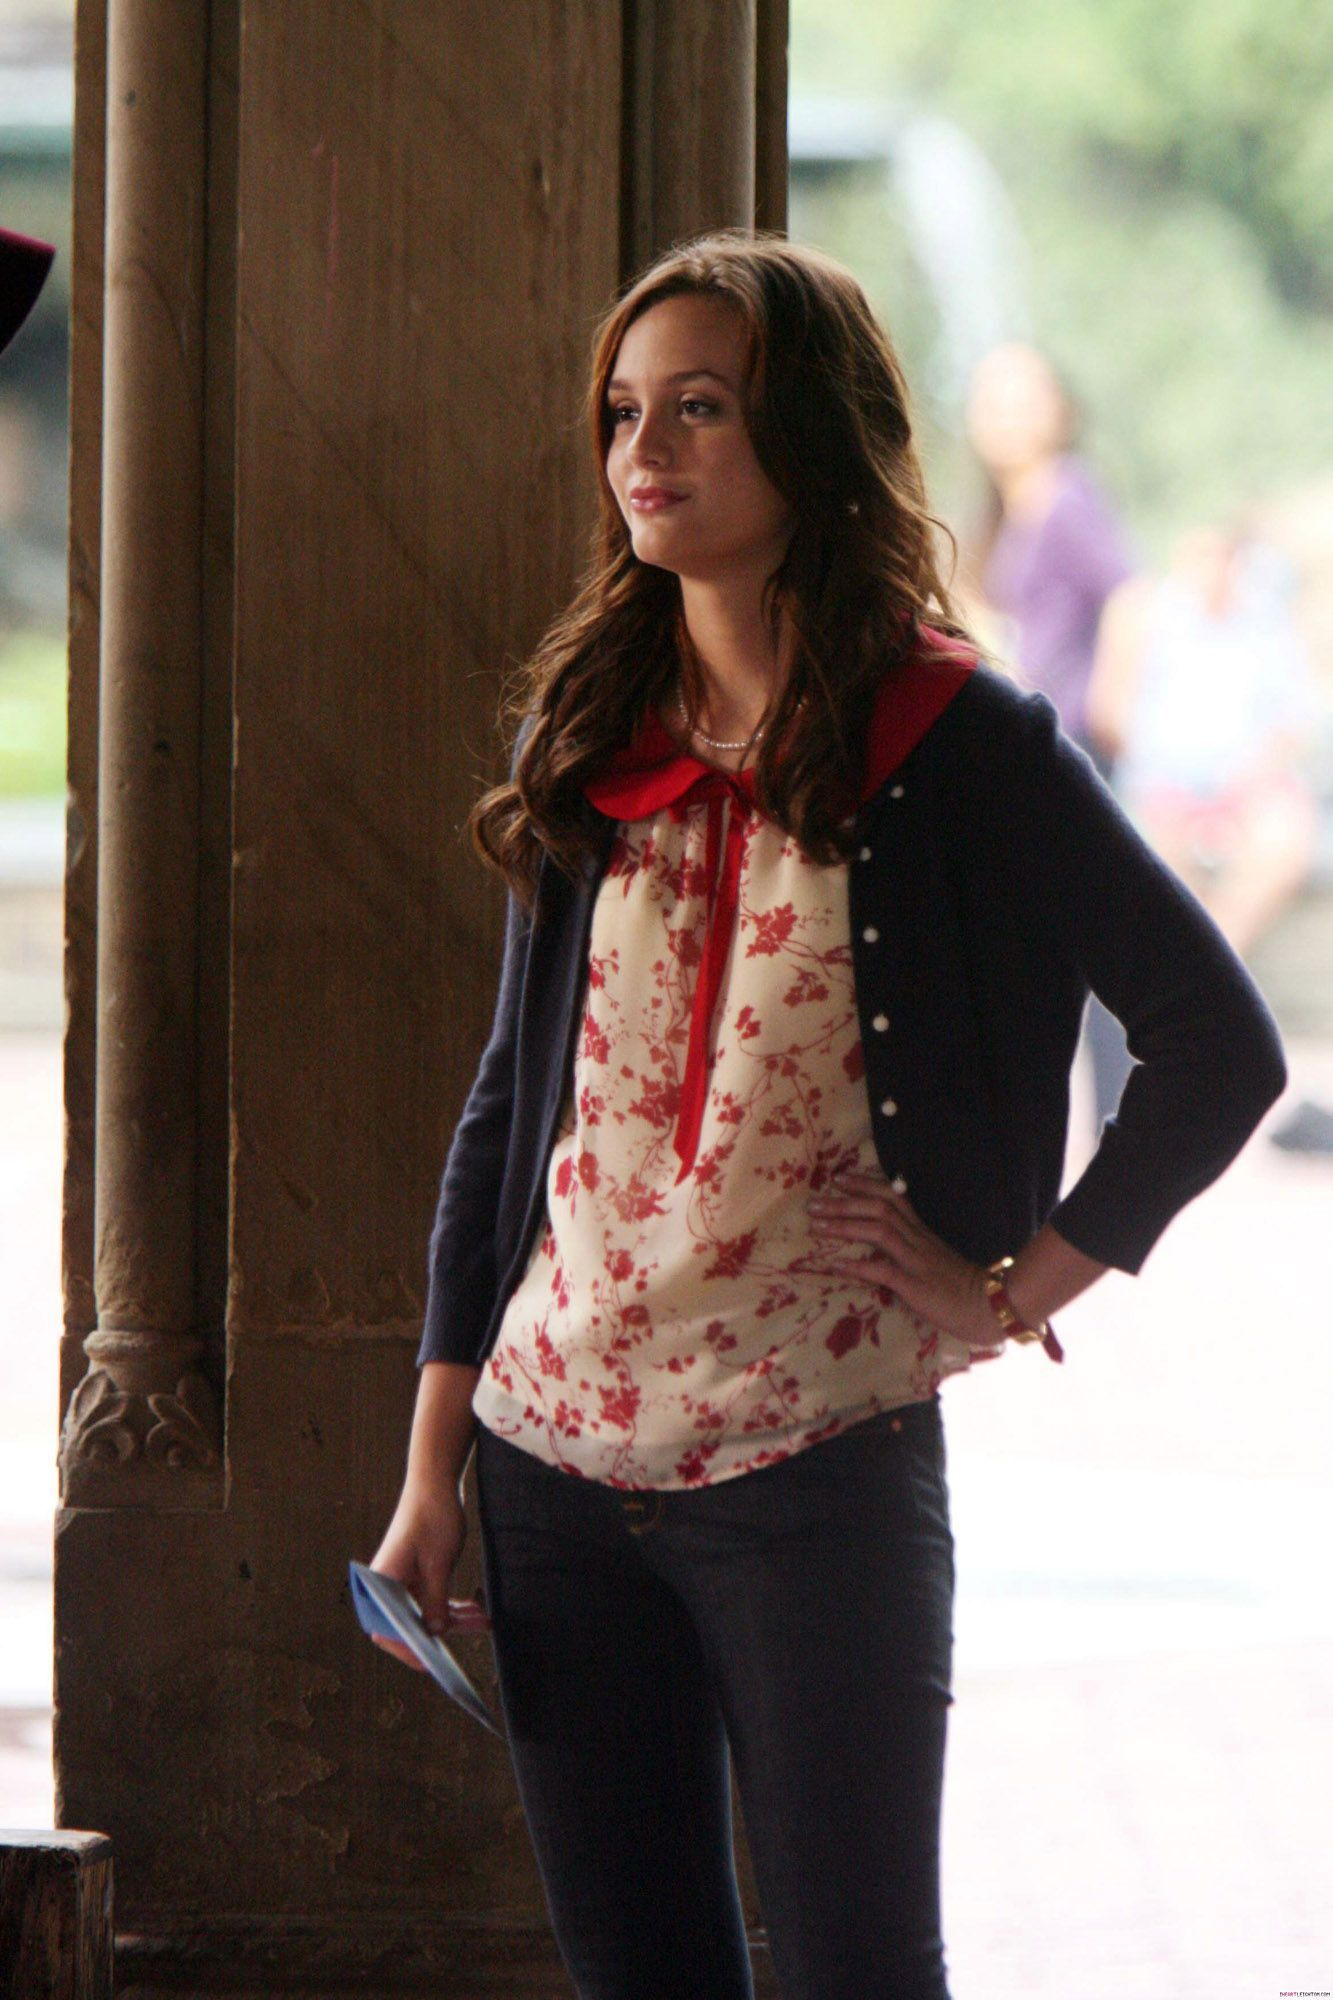 Gossip Girl 1x03 Poison Ivy Gossipgirl Blairwaldorf Queenbthe One Time She Wore Jeans